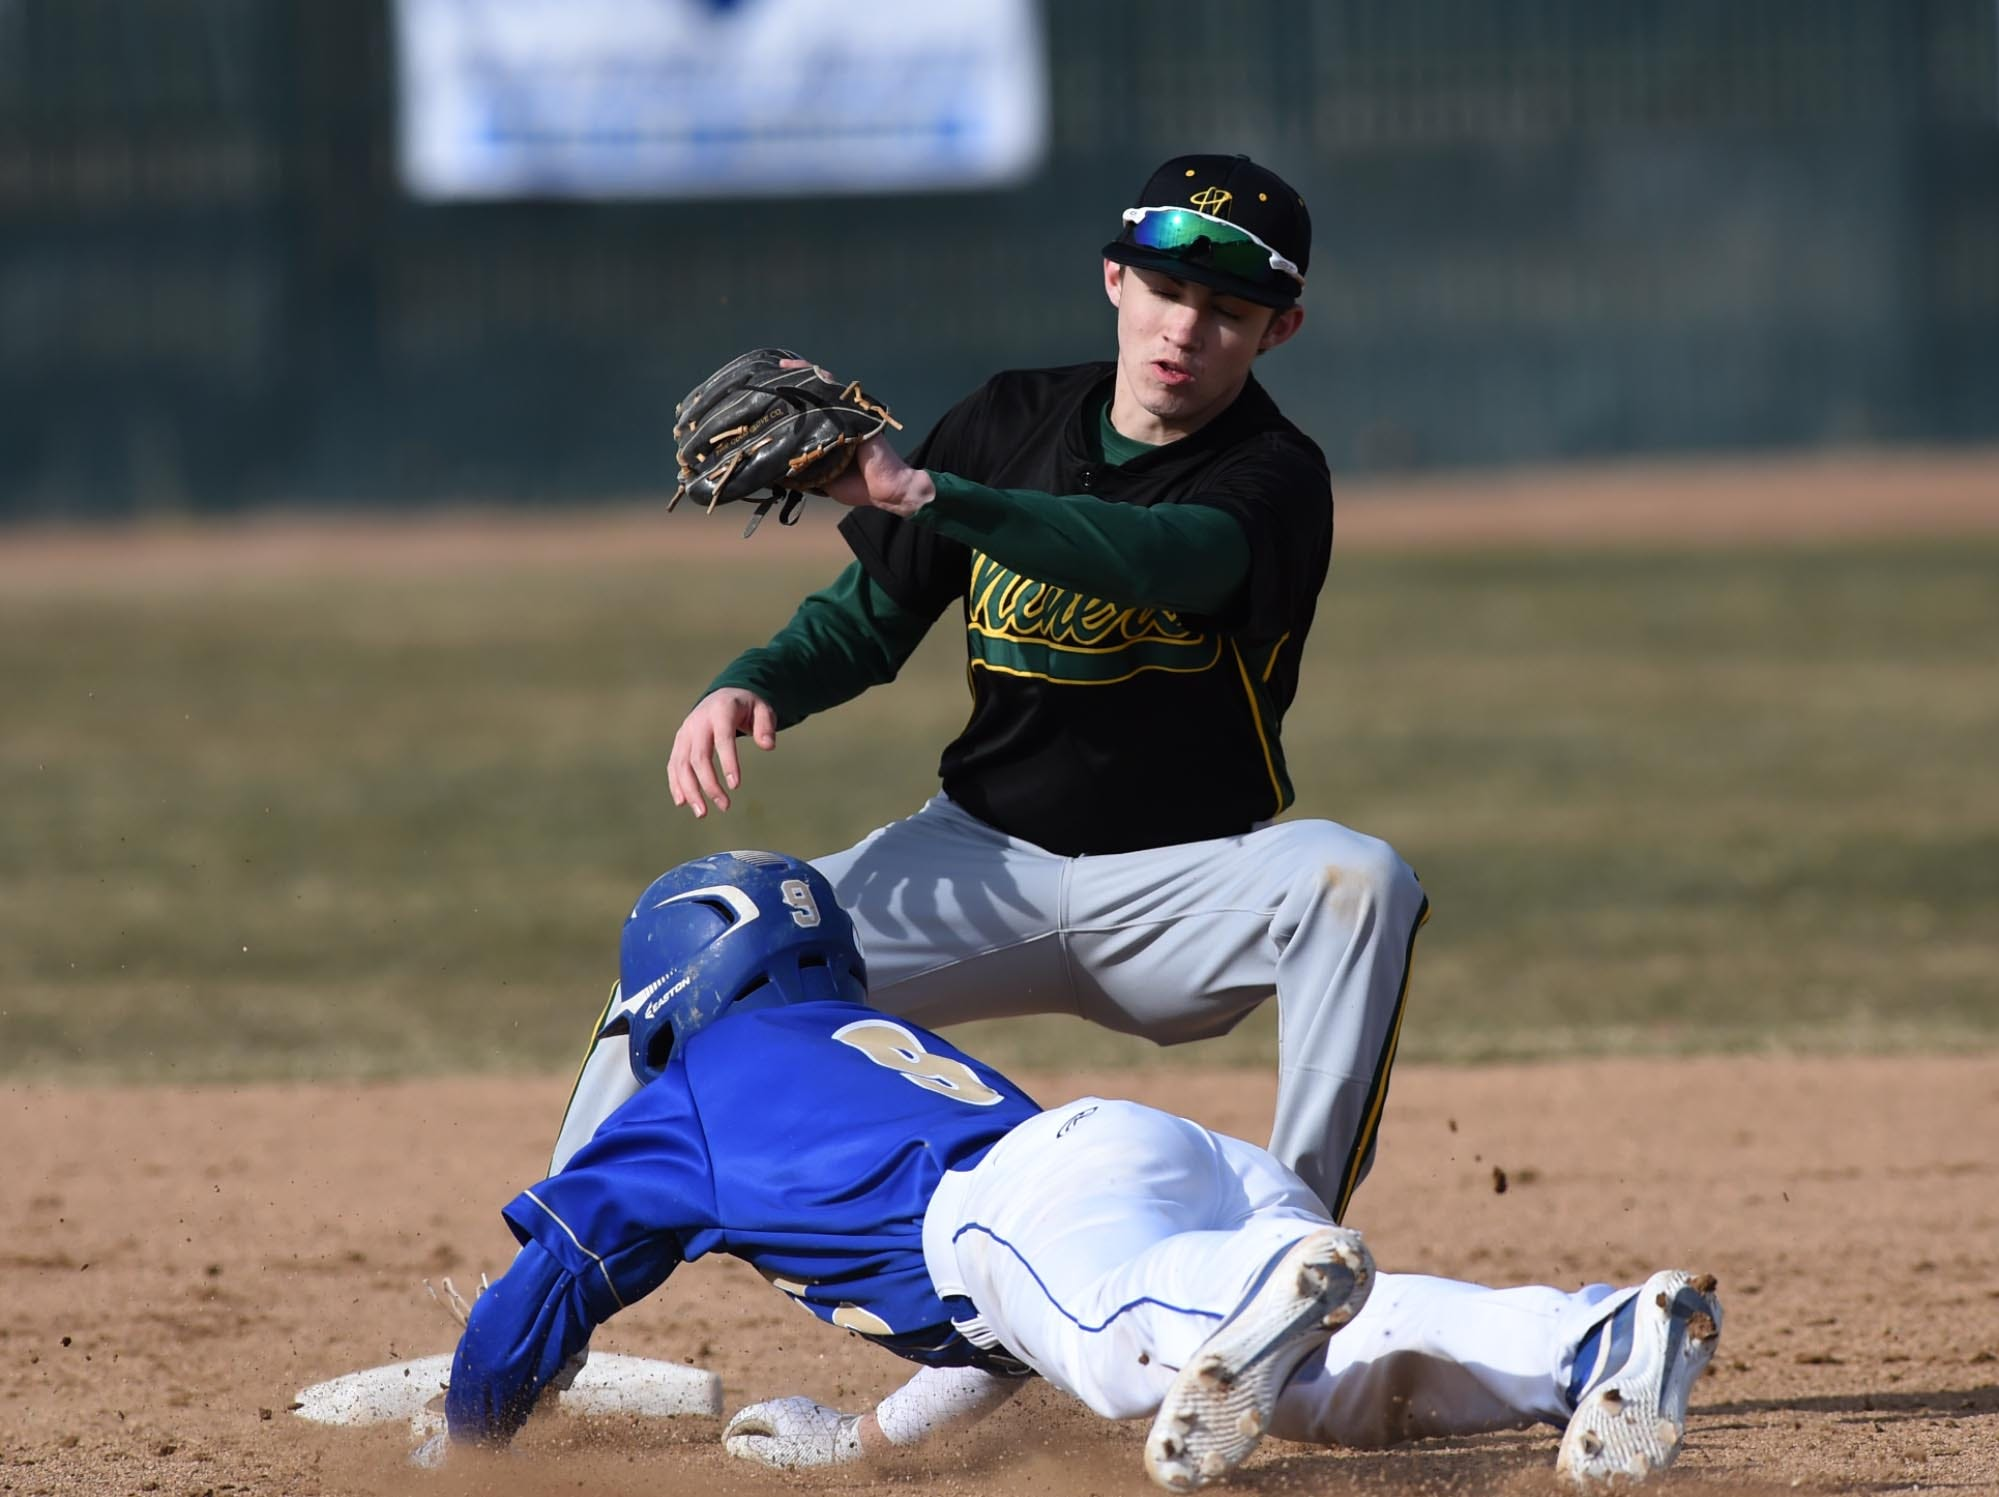 Images from the Bishop Manogue at Reed boys baseball game on Thursday March 14, 2019.